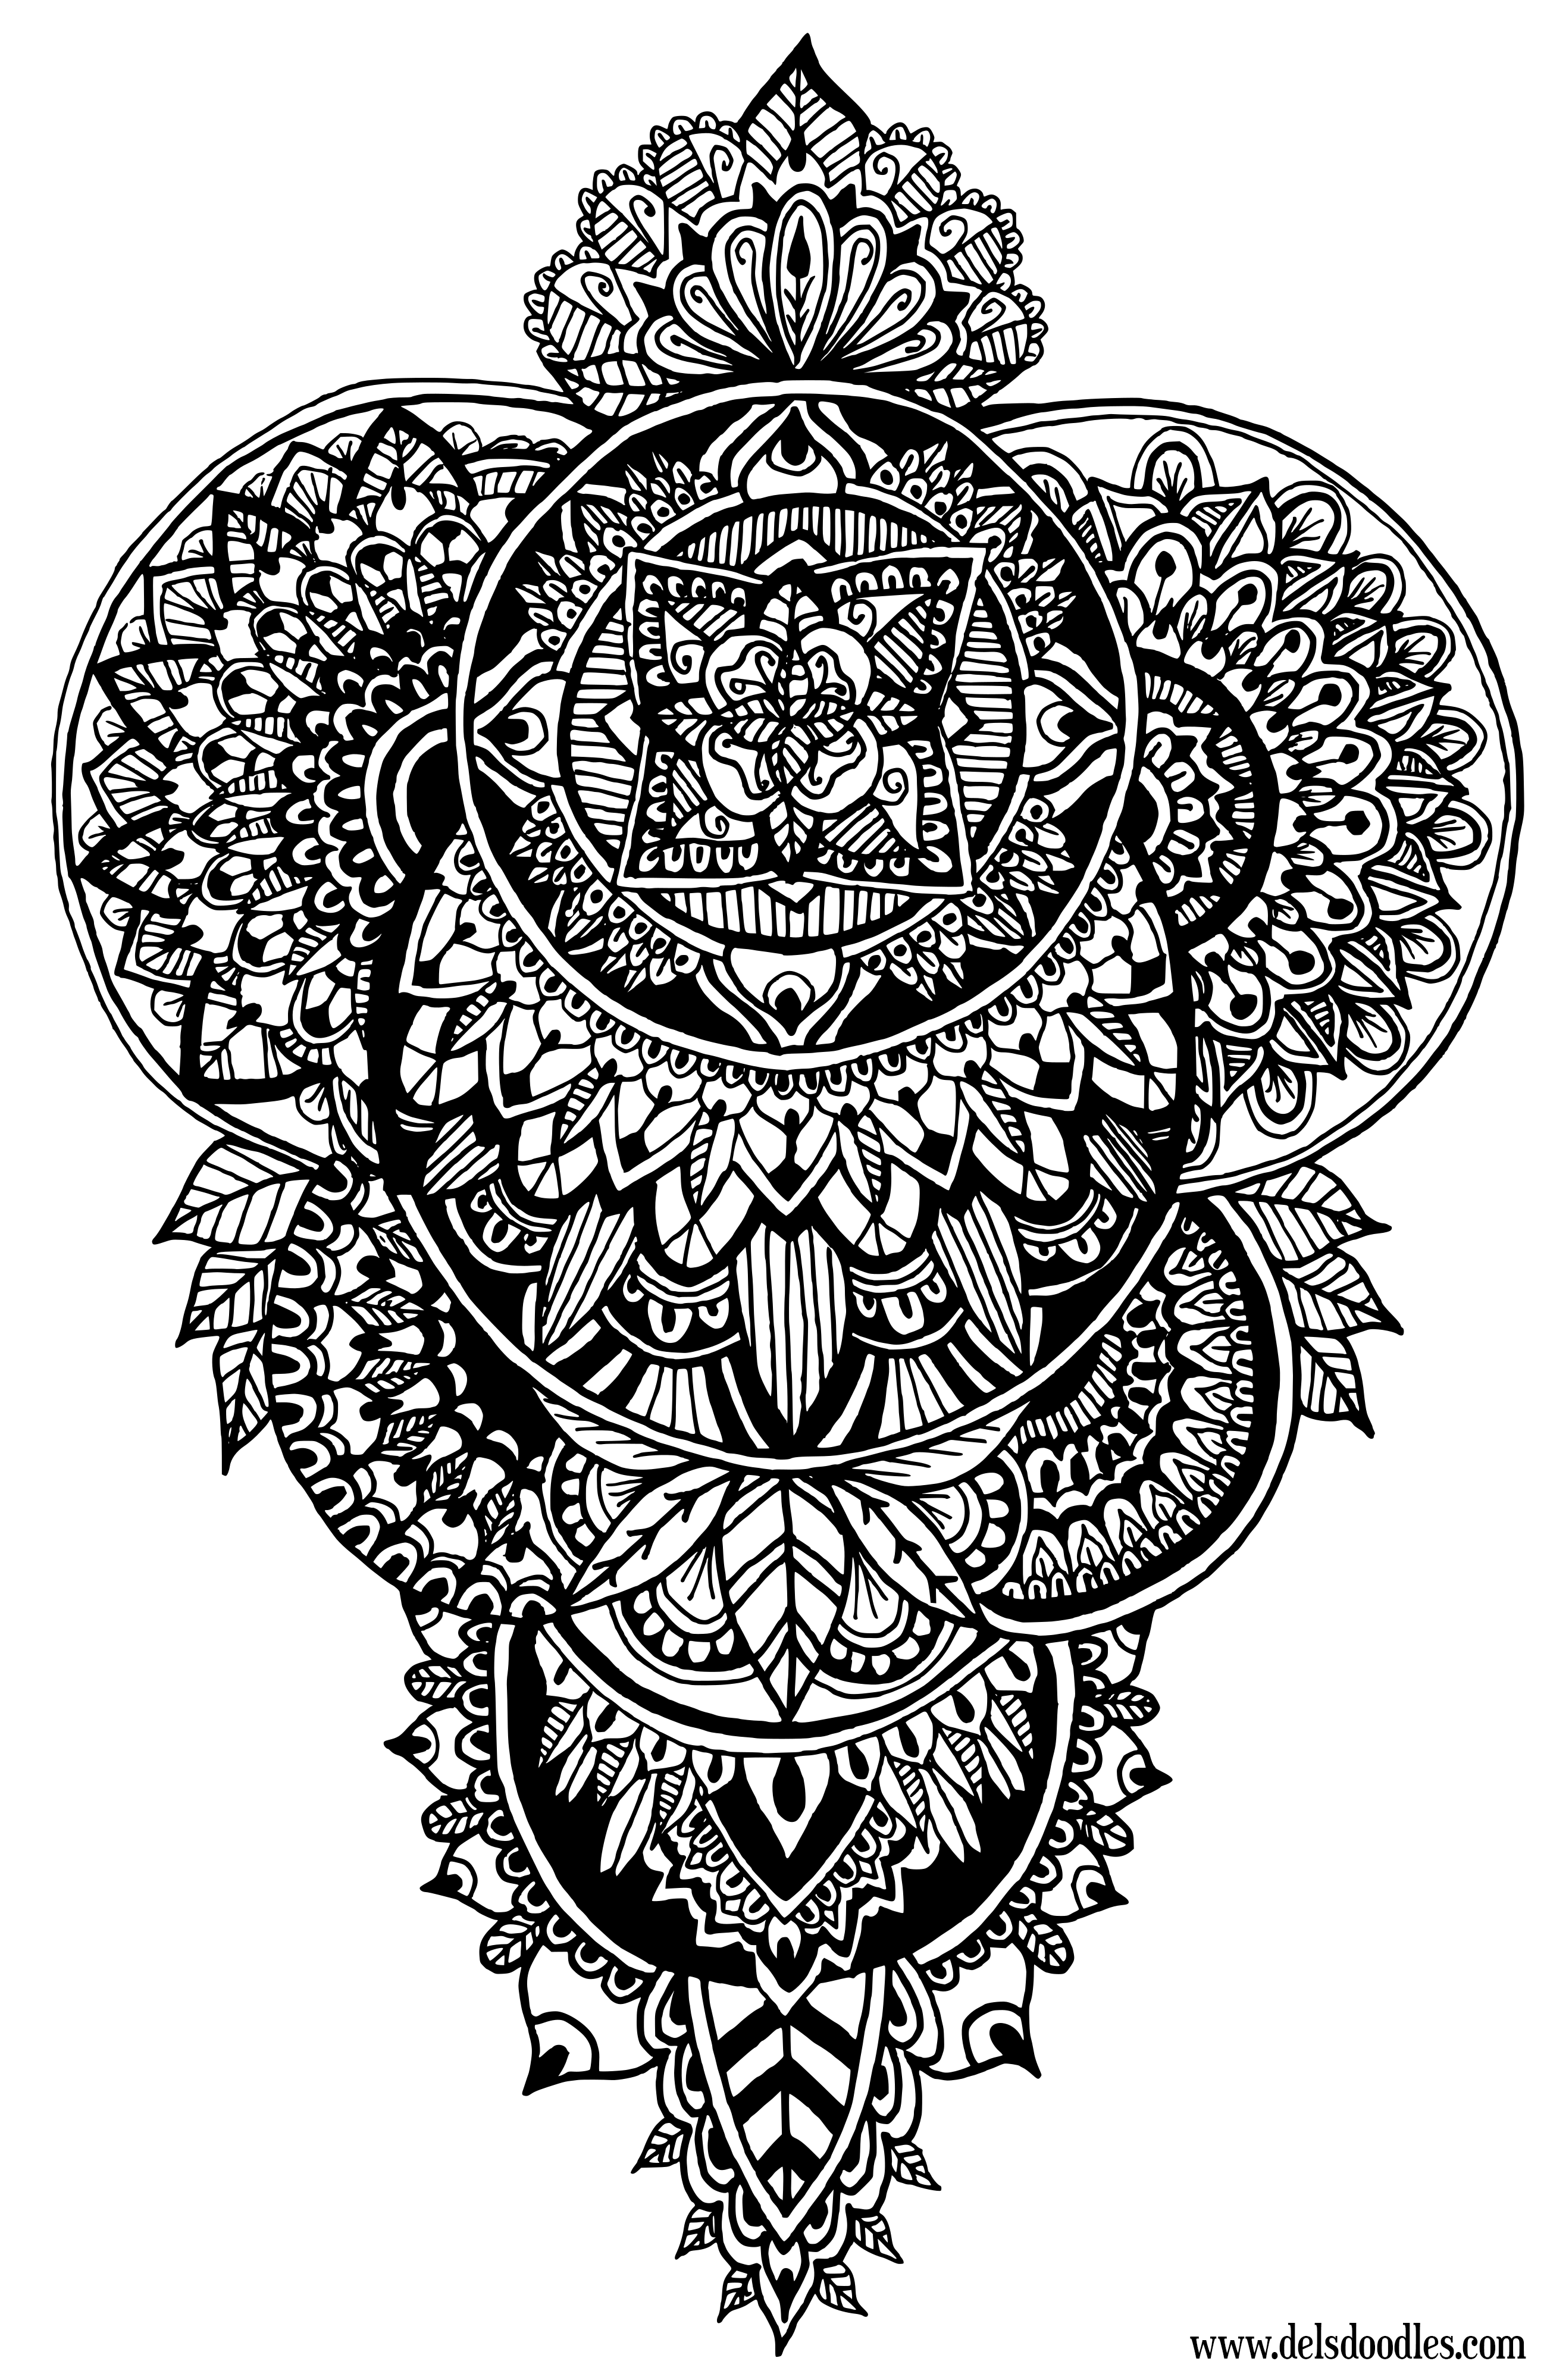 Disks Doodle Colouring Page By WelshPixie On DeviantArt